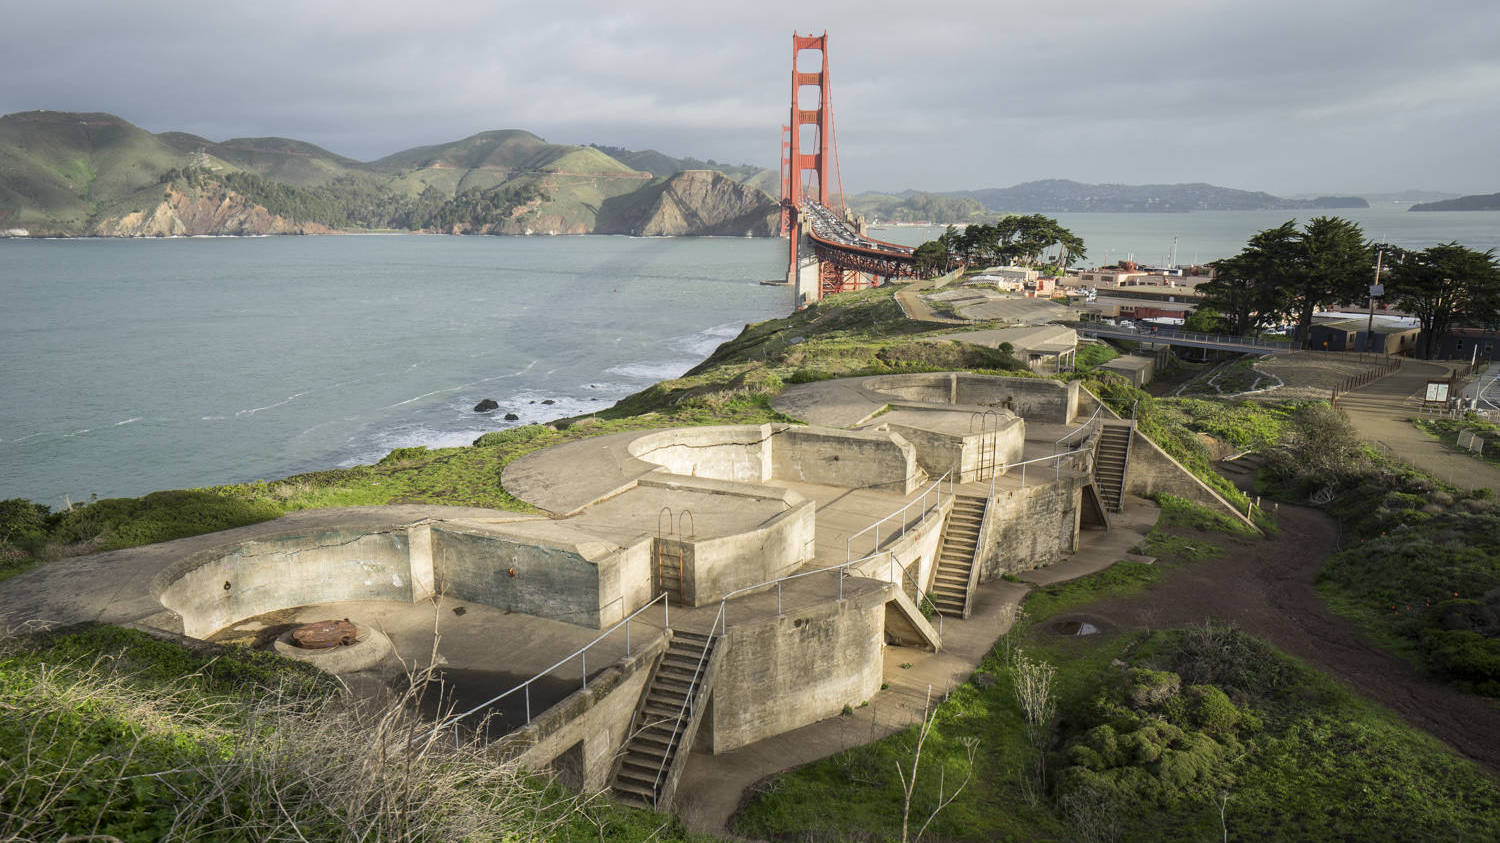 San Francisco bunker